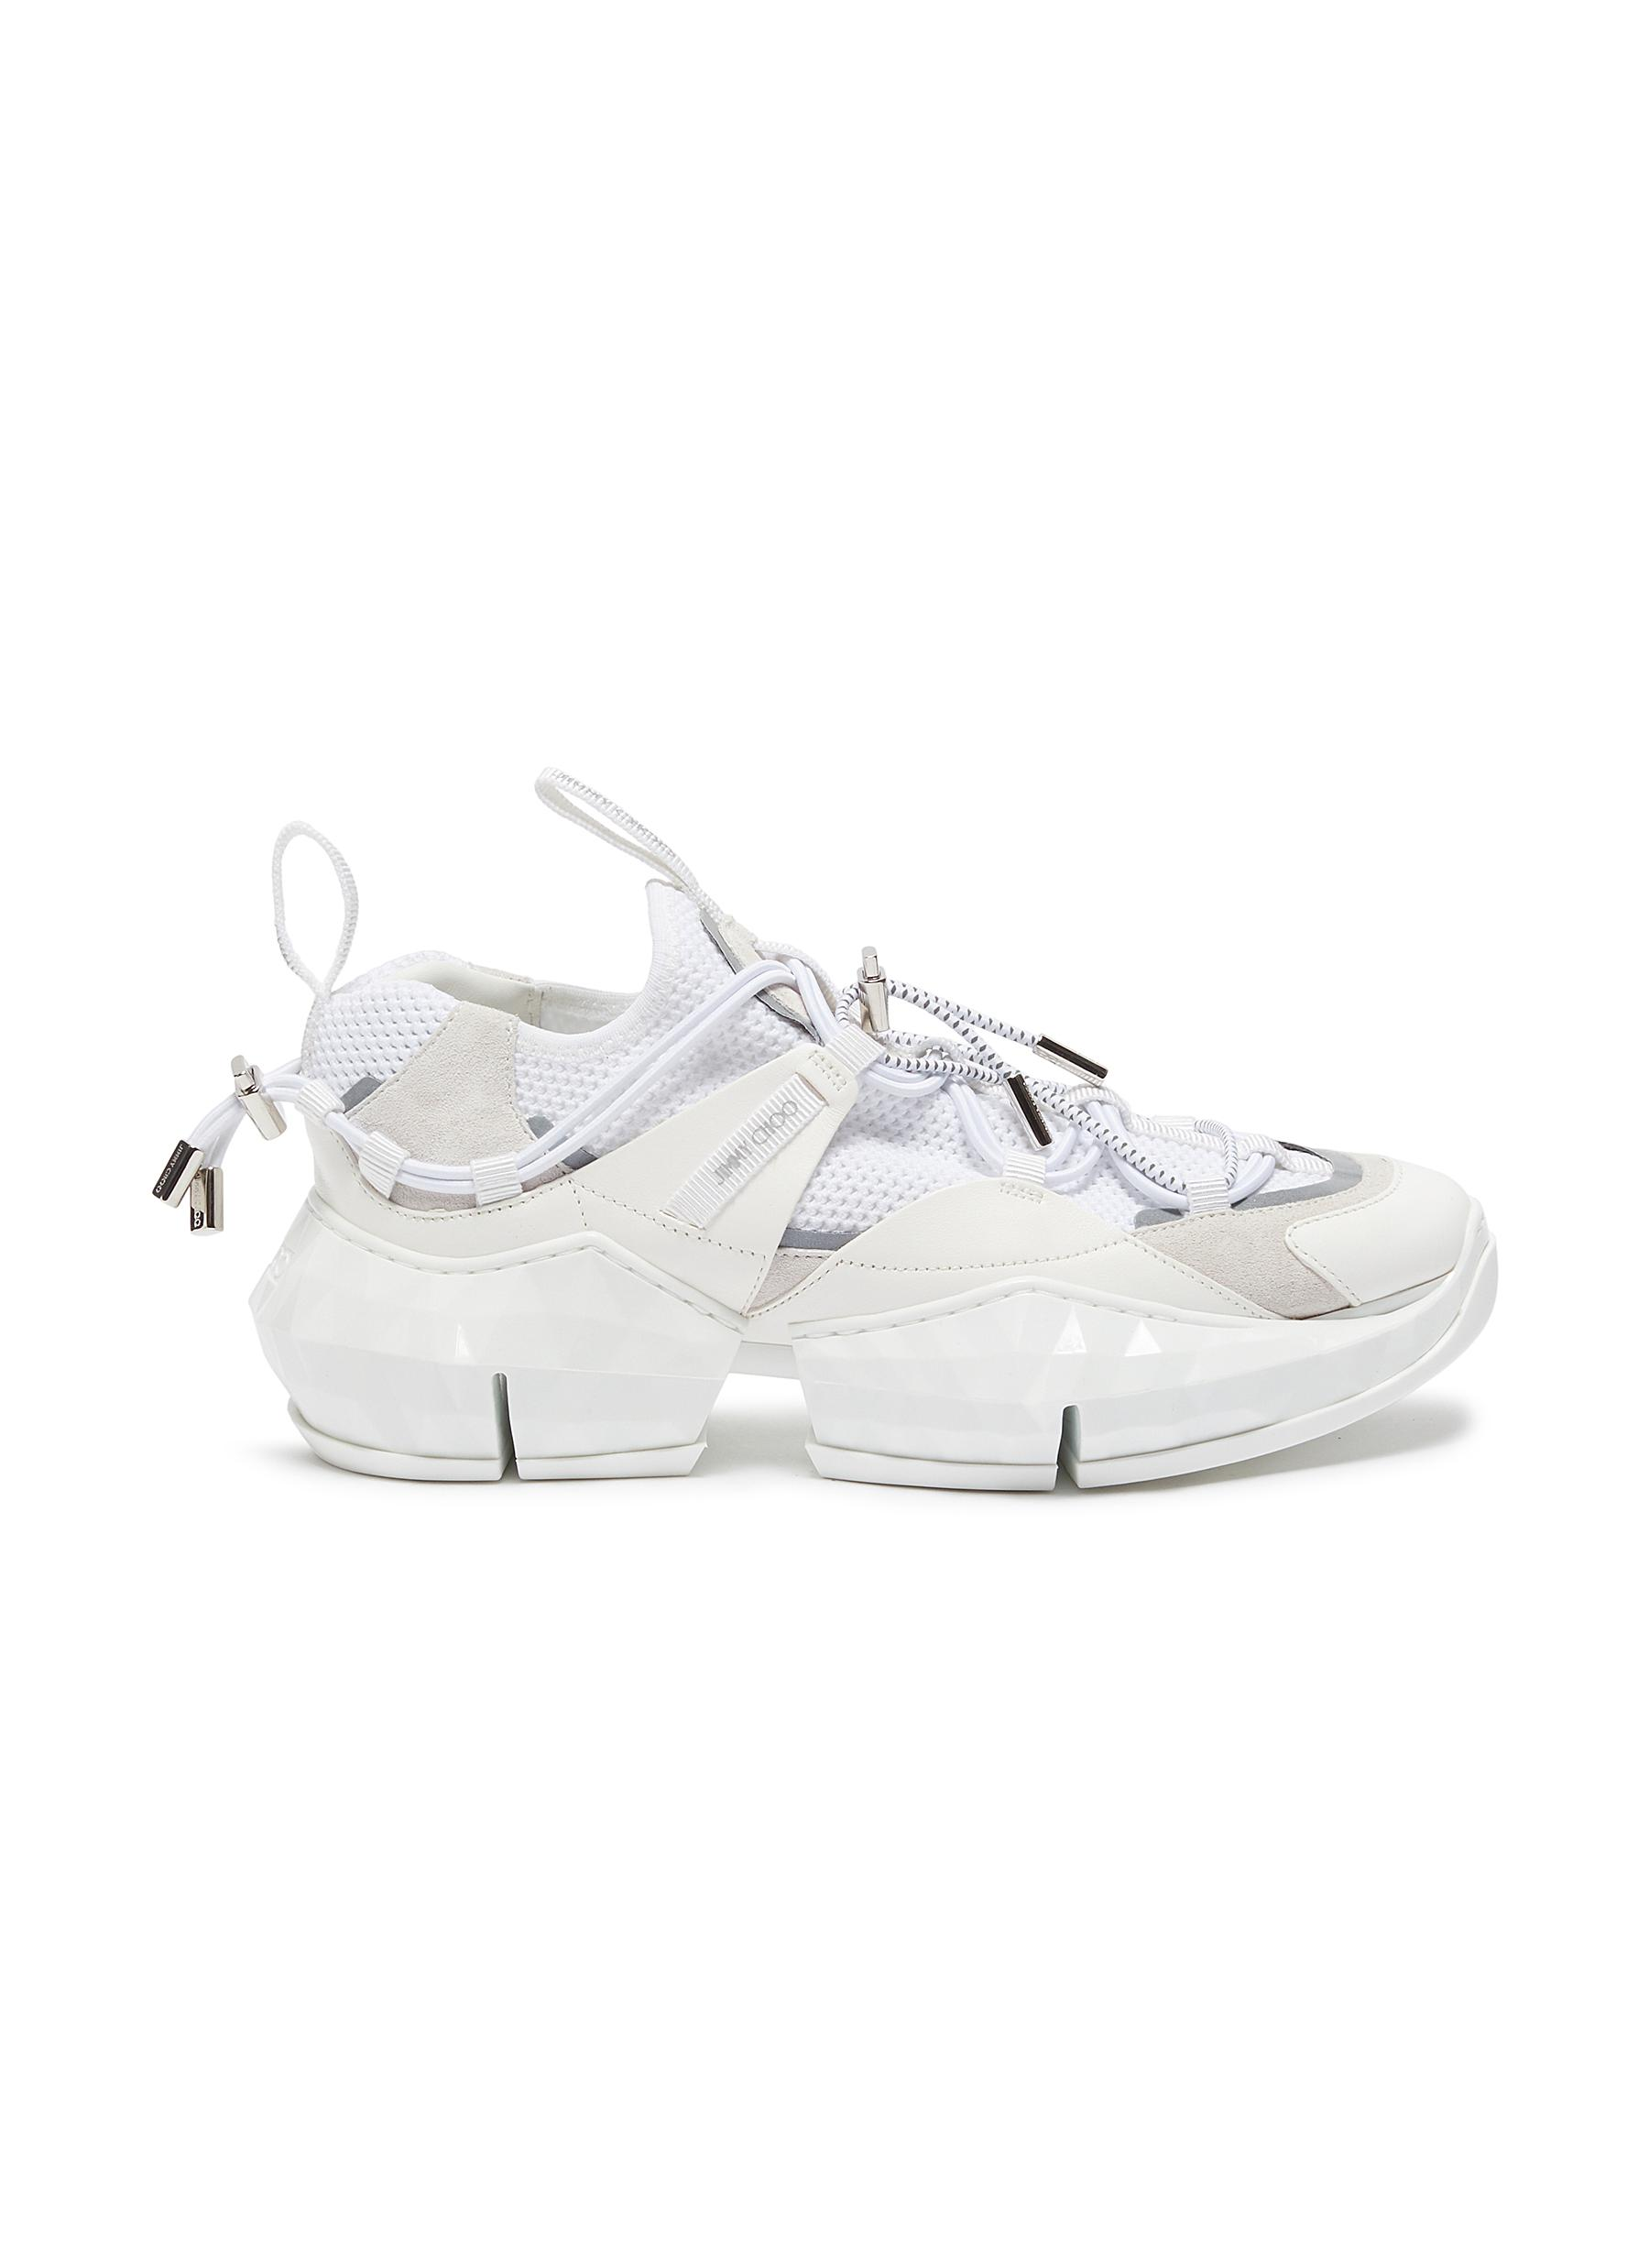 shop Jimmy Choo 'Diamond Trail' stretch mesh leather sneakers online